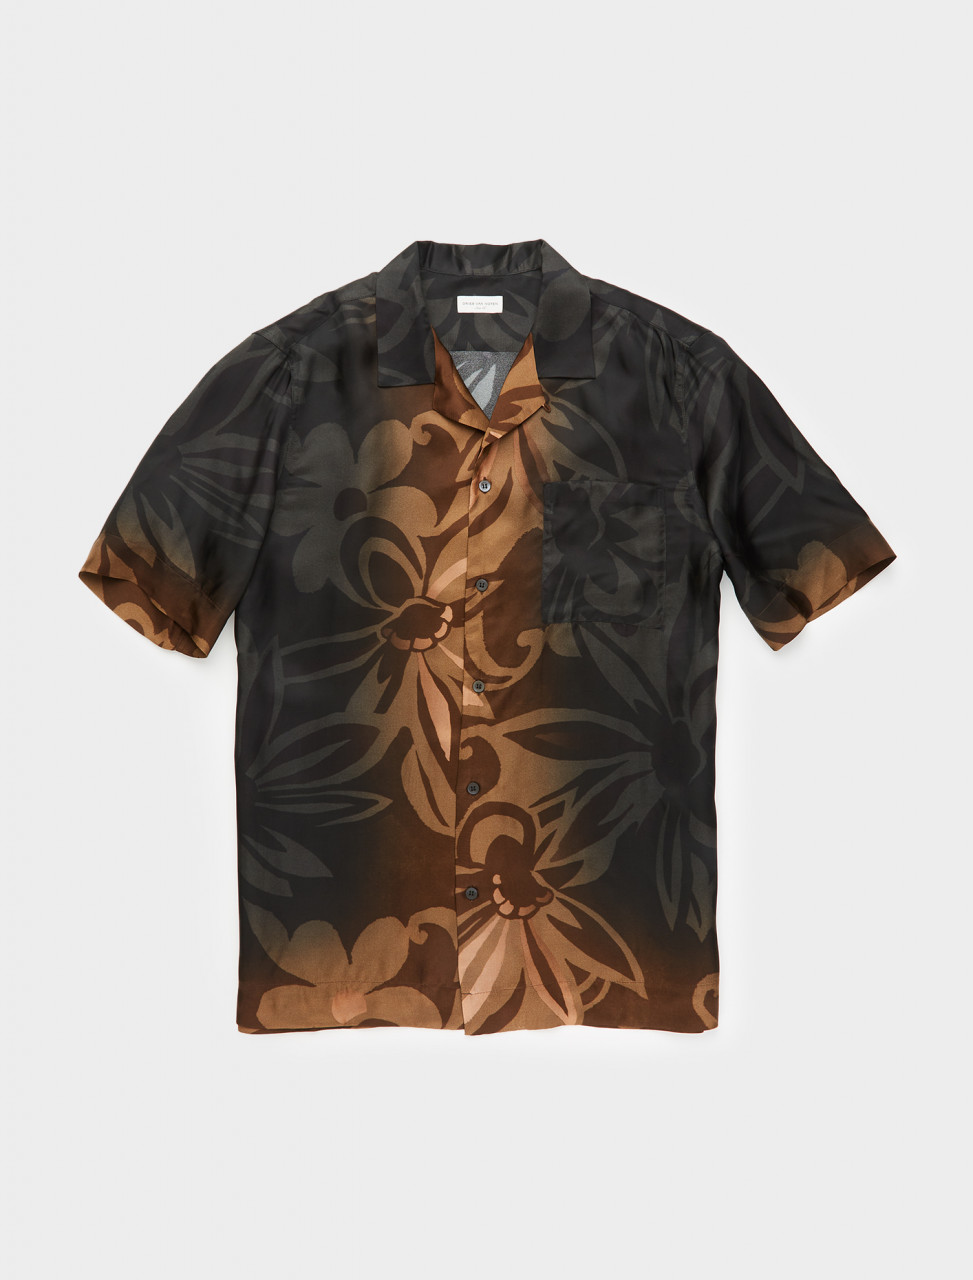 260-202-20717-1065-900 DRIES VAN NOTEN CARLTONE CAMP COLLAR PRINTED SHIRT BLACK